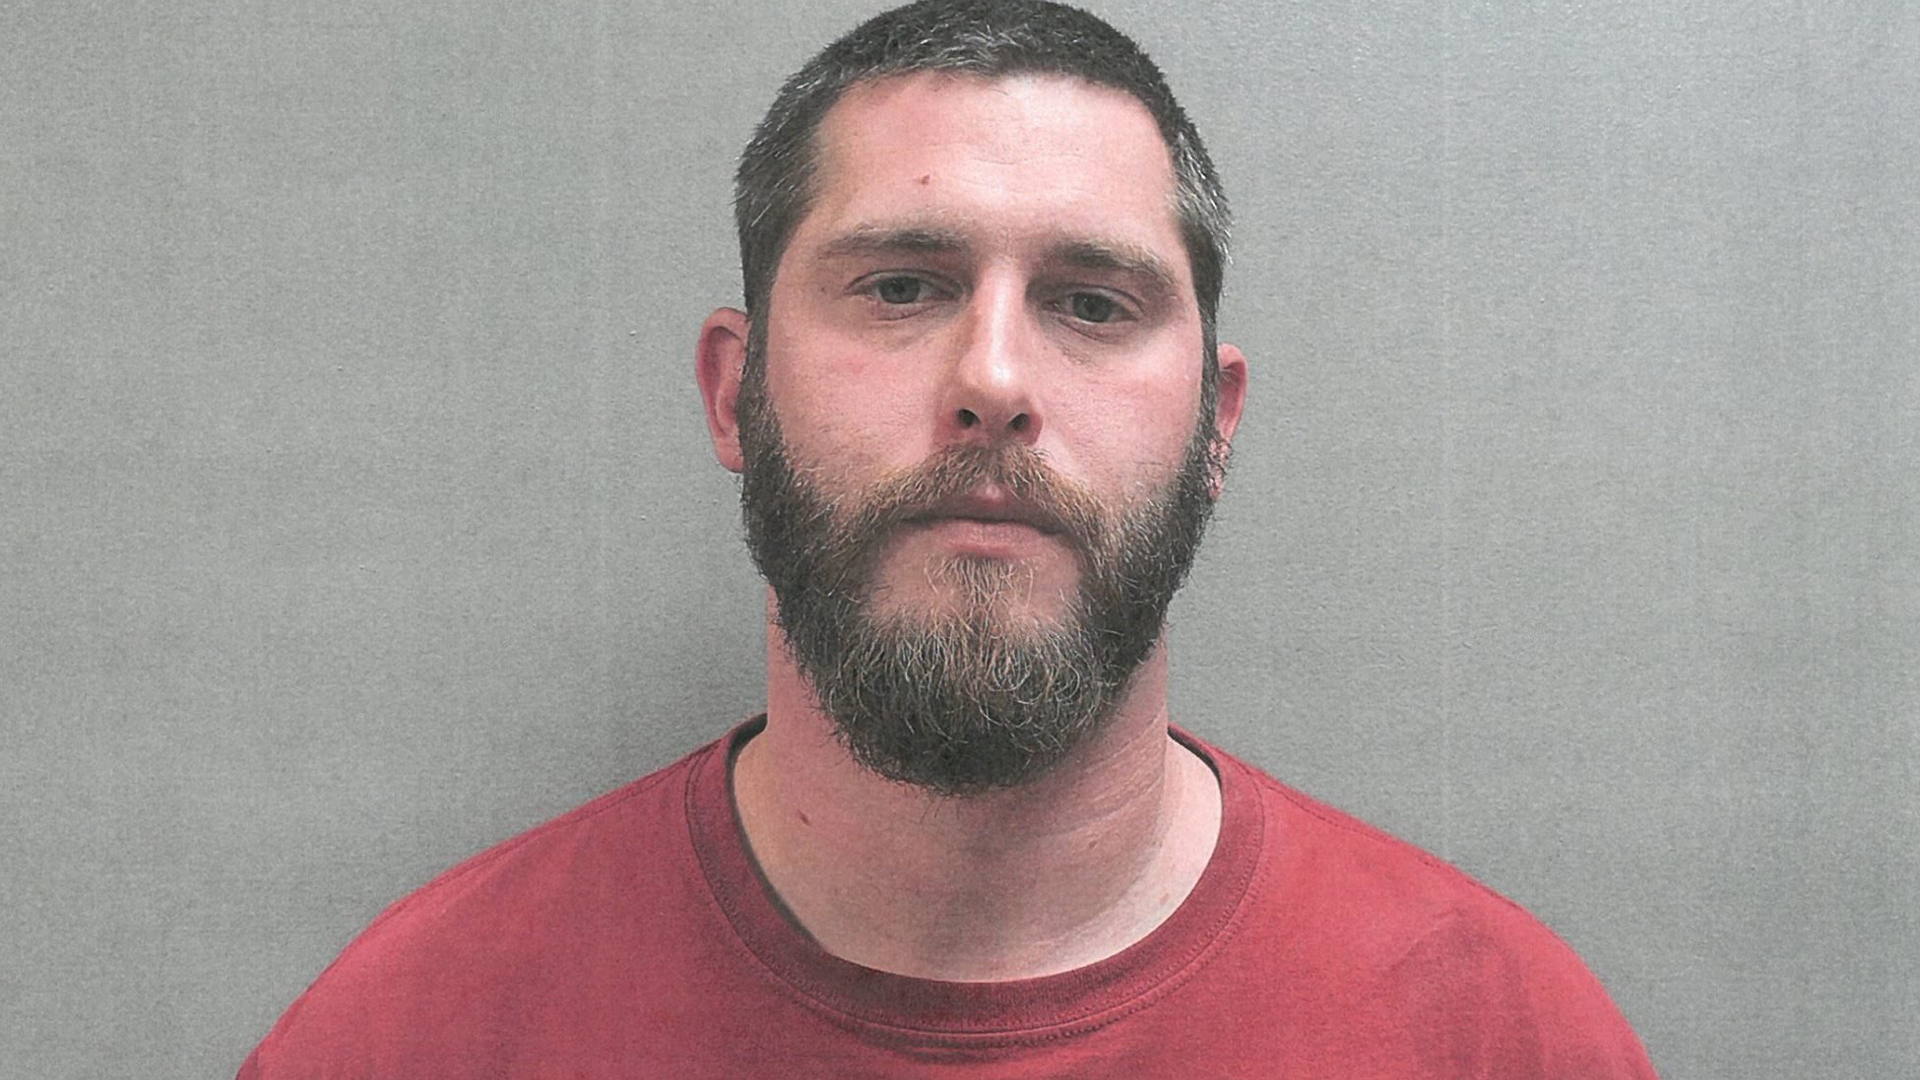 Escaped inmate Branden Powell, 32, killed himself as police cornered him near Antwerp, Ohio. (Credit: Paulding County Sheriff's Office)